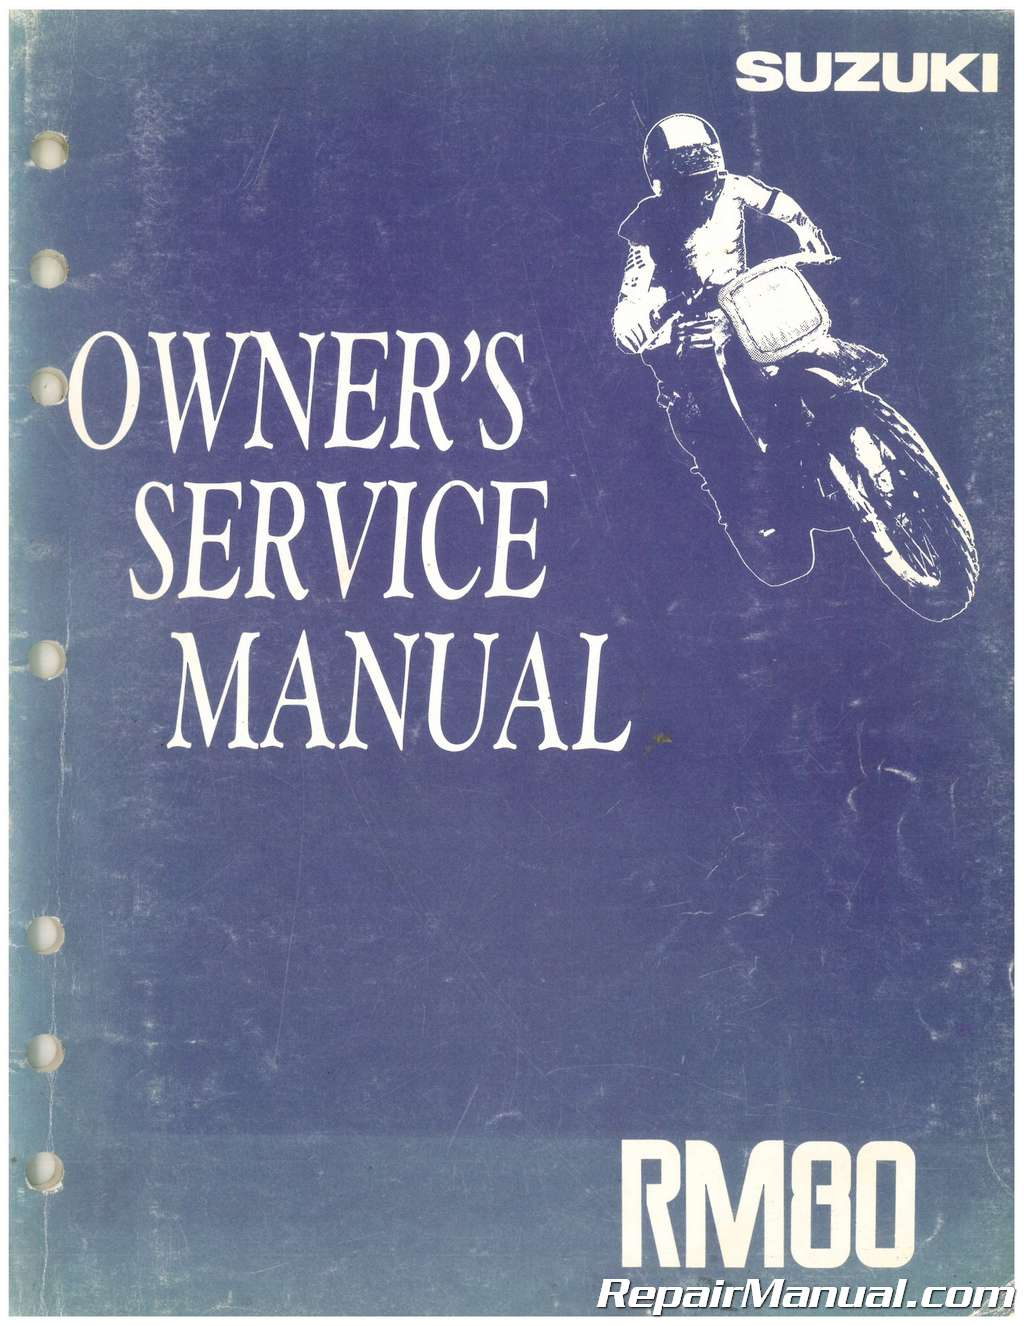 Used 1992 Suzuki Rm80 Owners Service Manual